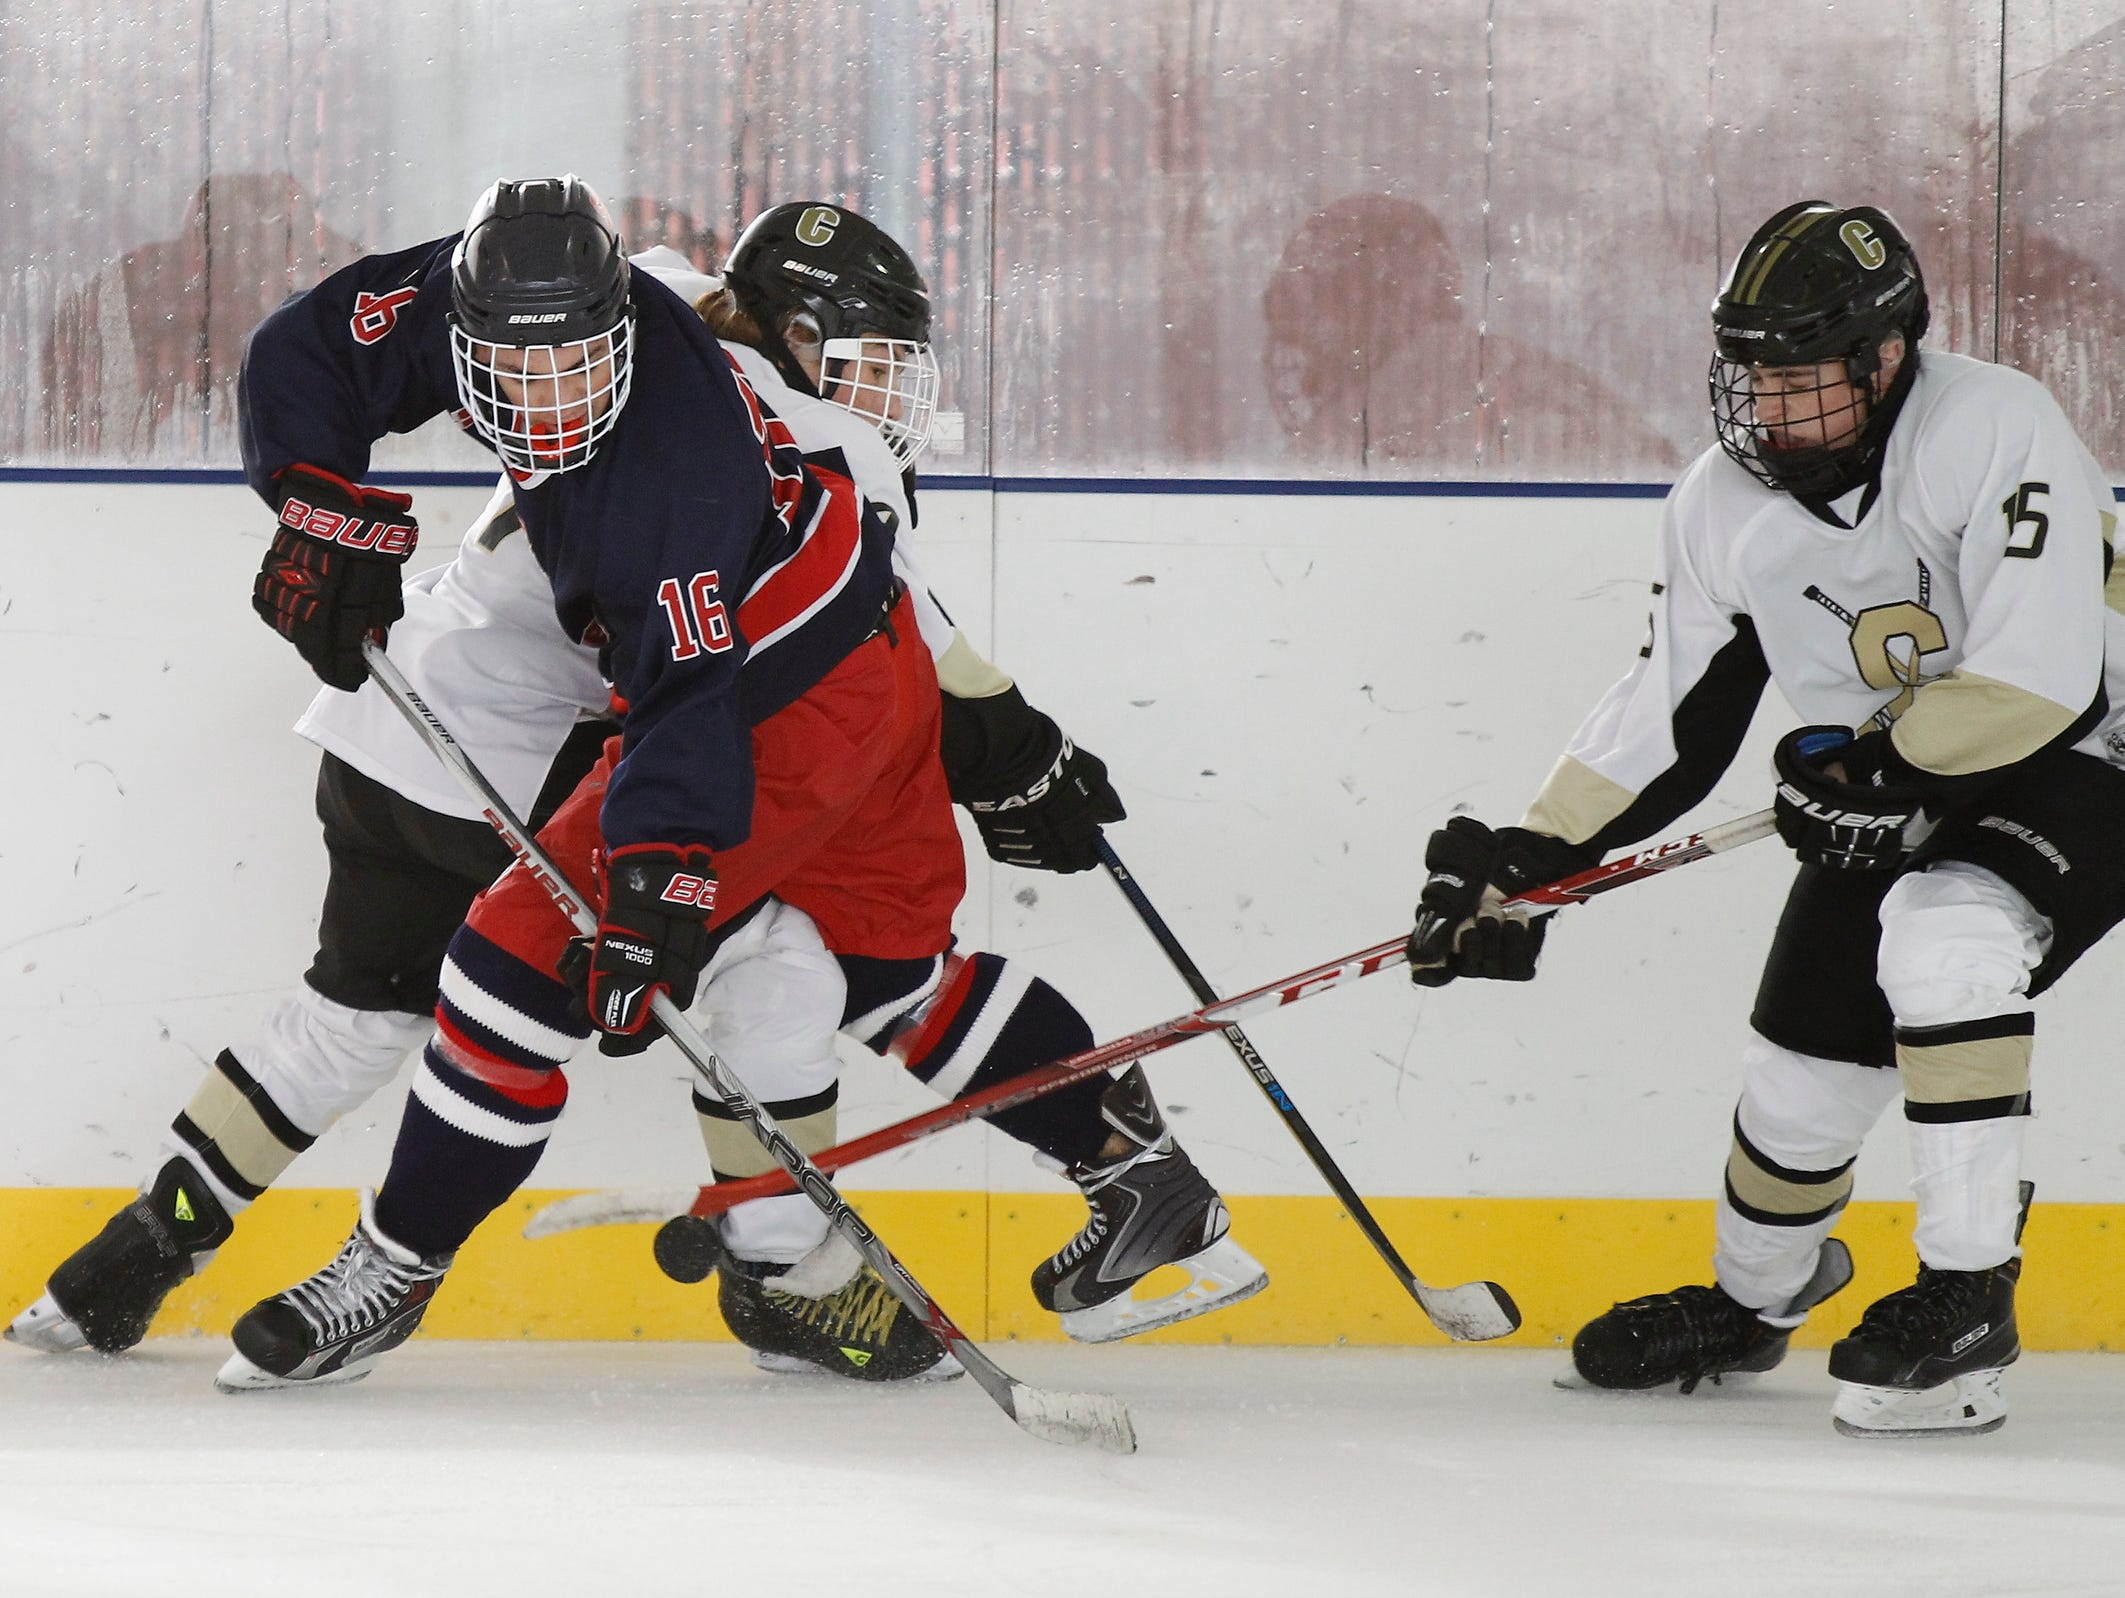 Stepinac's PJ Reith (16) is checked by Clarkstown's Riku Robins (7) during a varsity ice hockey game at the 2015 Guy Matthews Thanksgiving Invitational Hockey tournament at Ebersole Ice Rink in White Plains on Friday, Nov. 27, 2015.